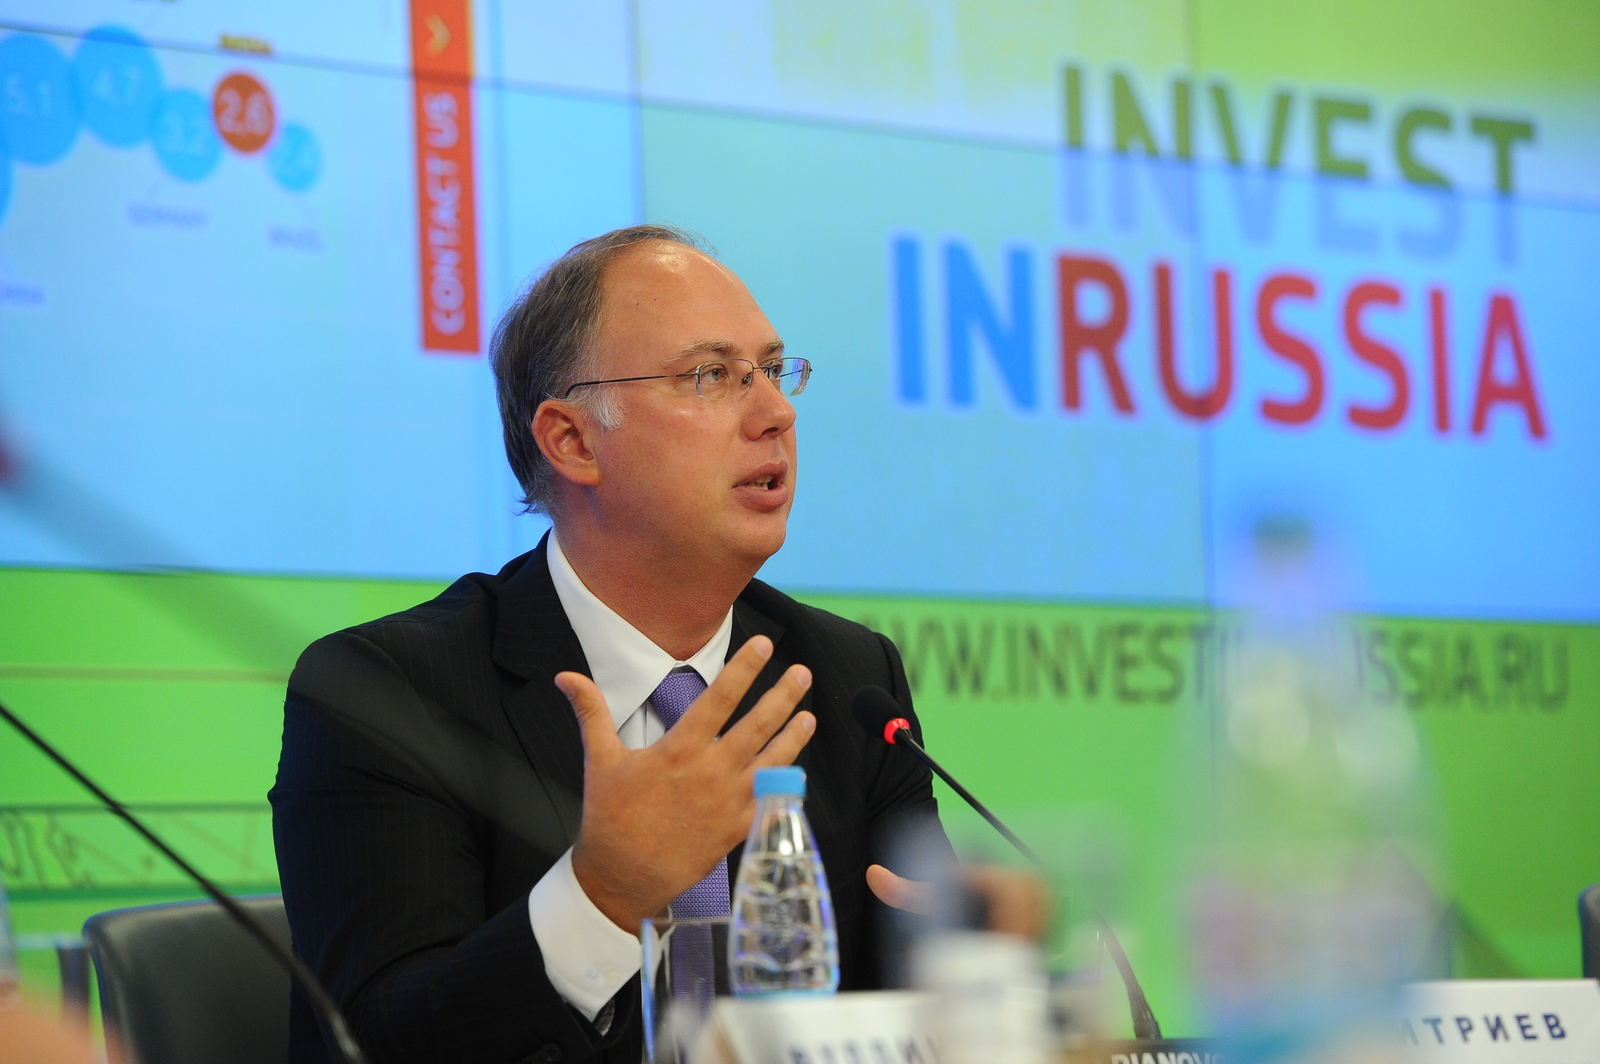 Russian direct investment fund, direct investment funds in russia, fund of direct investments, direct investment fund of the russian federation, venture fund of direct investments, mutual funds of direct investments, investmen in russia, russian investors